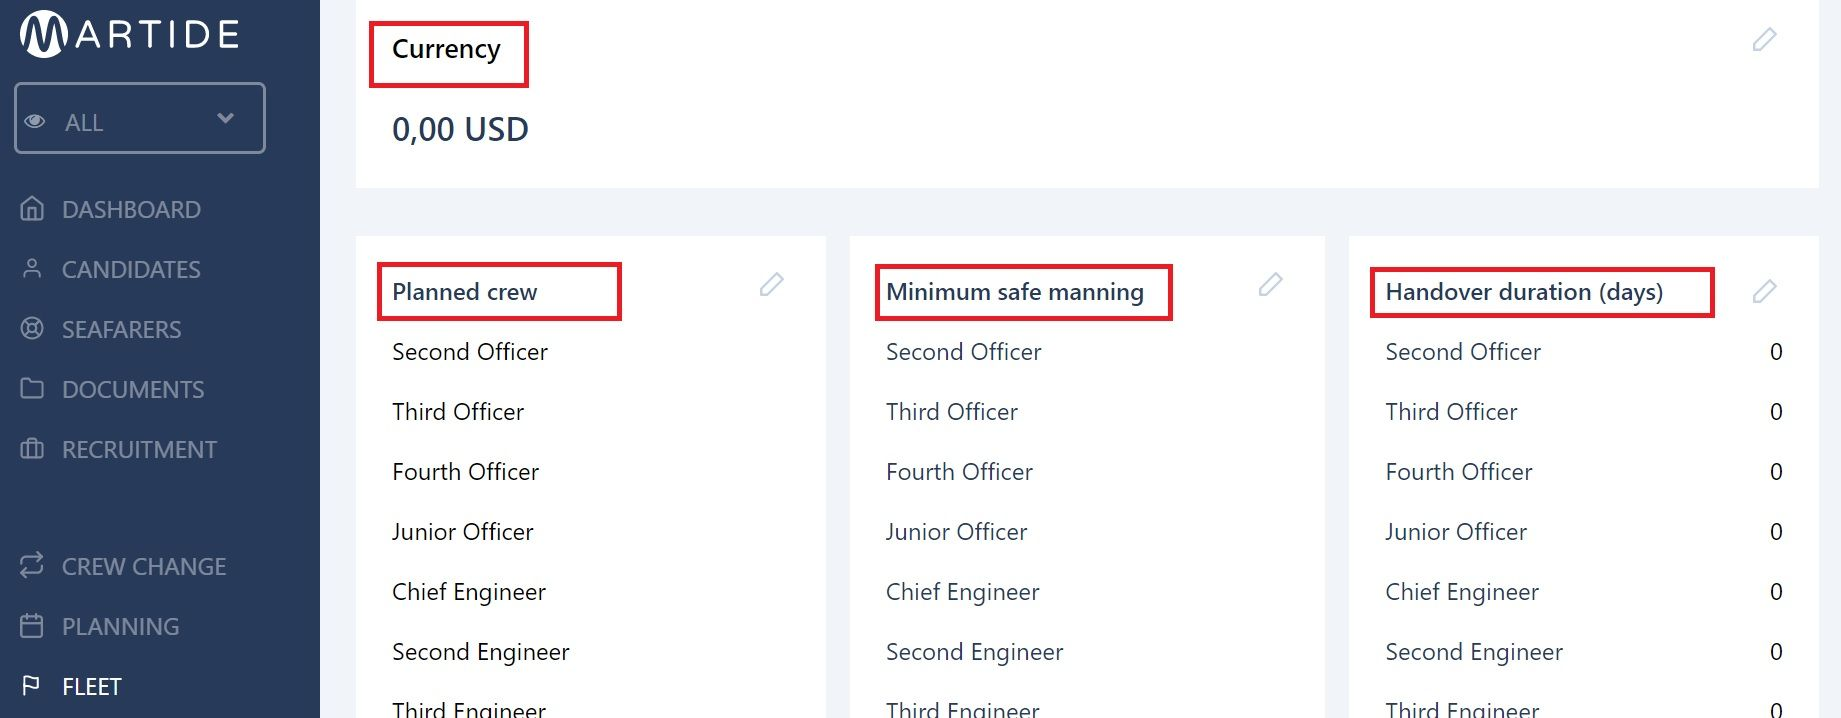 screenshot showing the currency, planned crew, minimum safe manning and handover sections